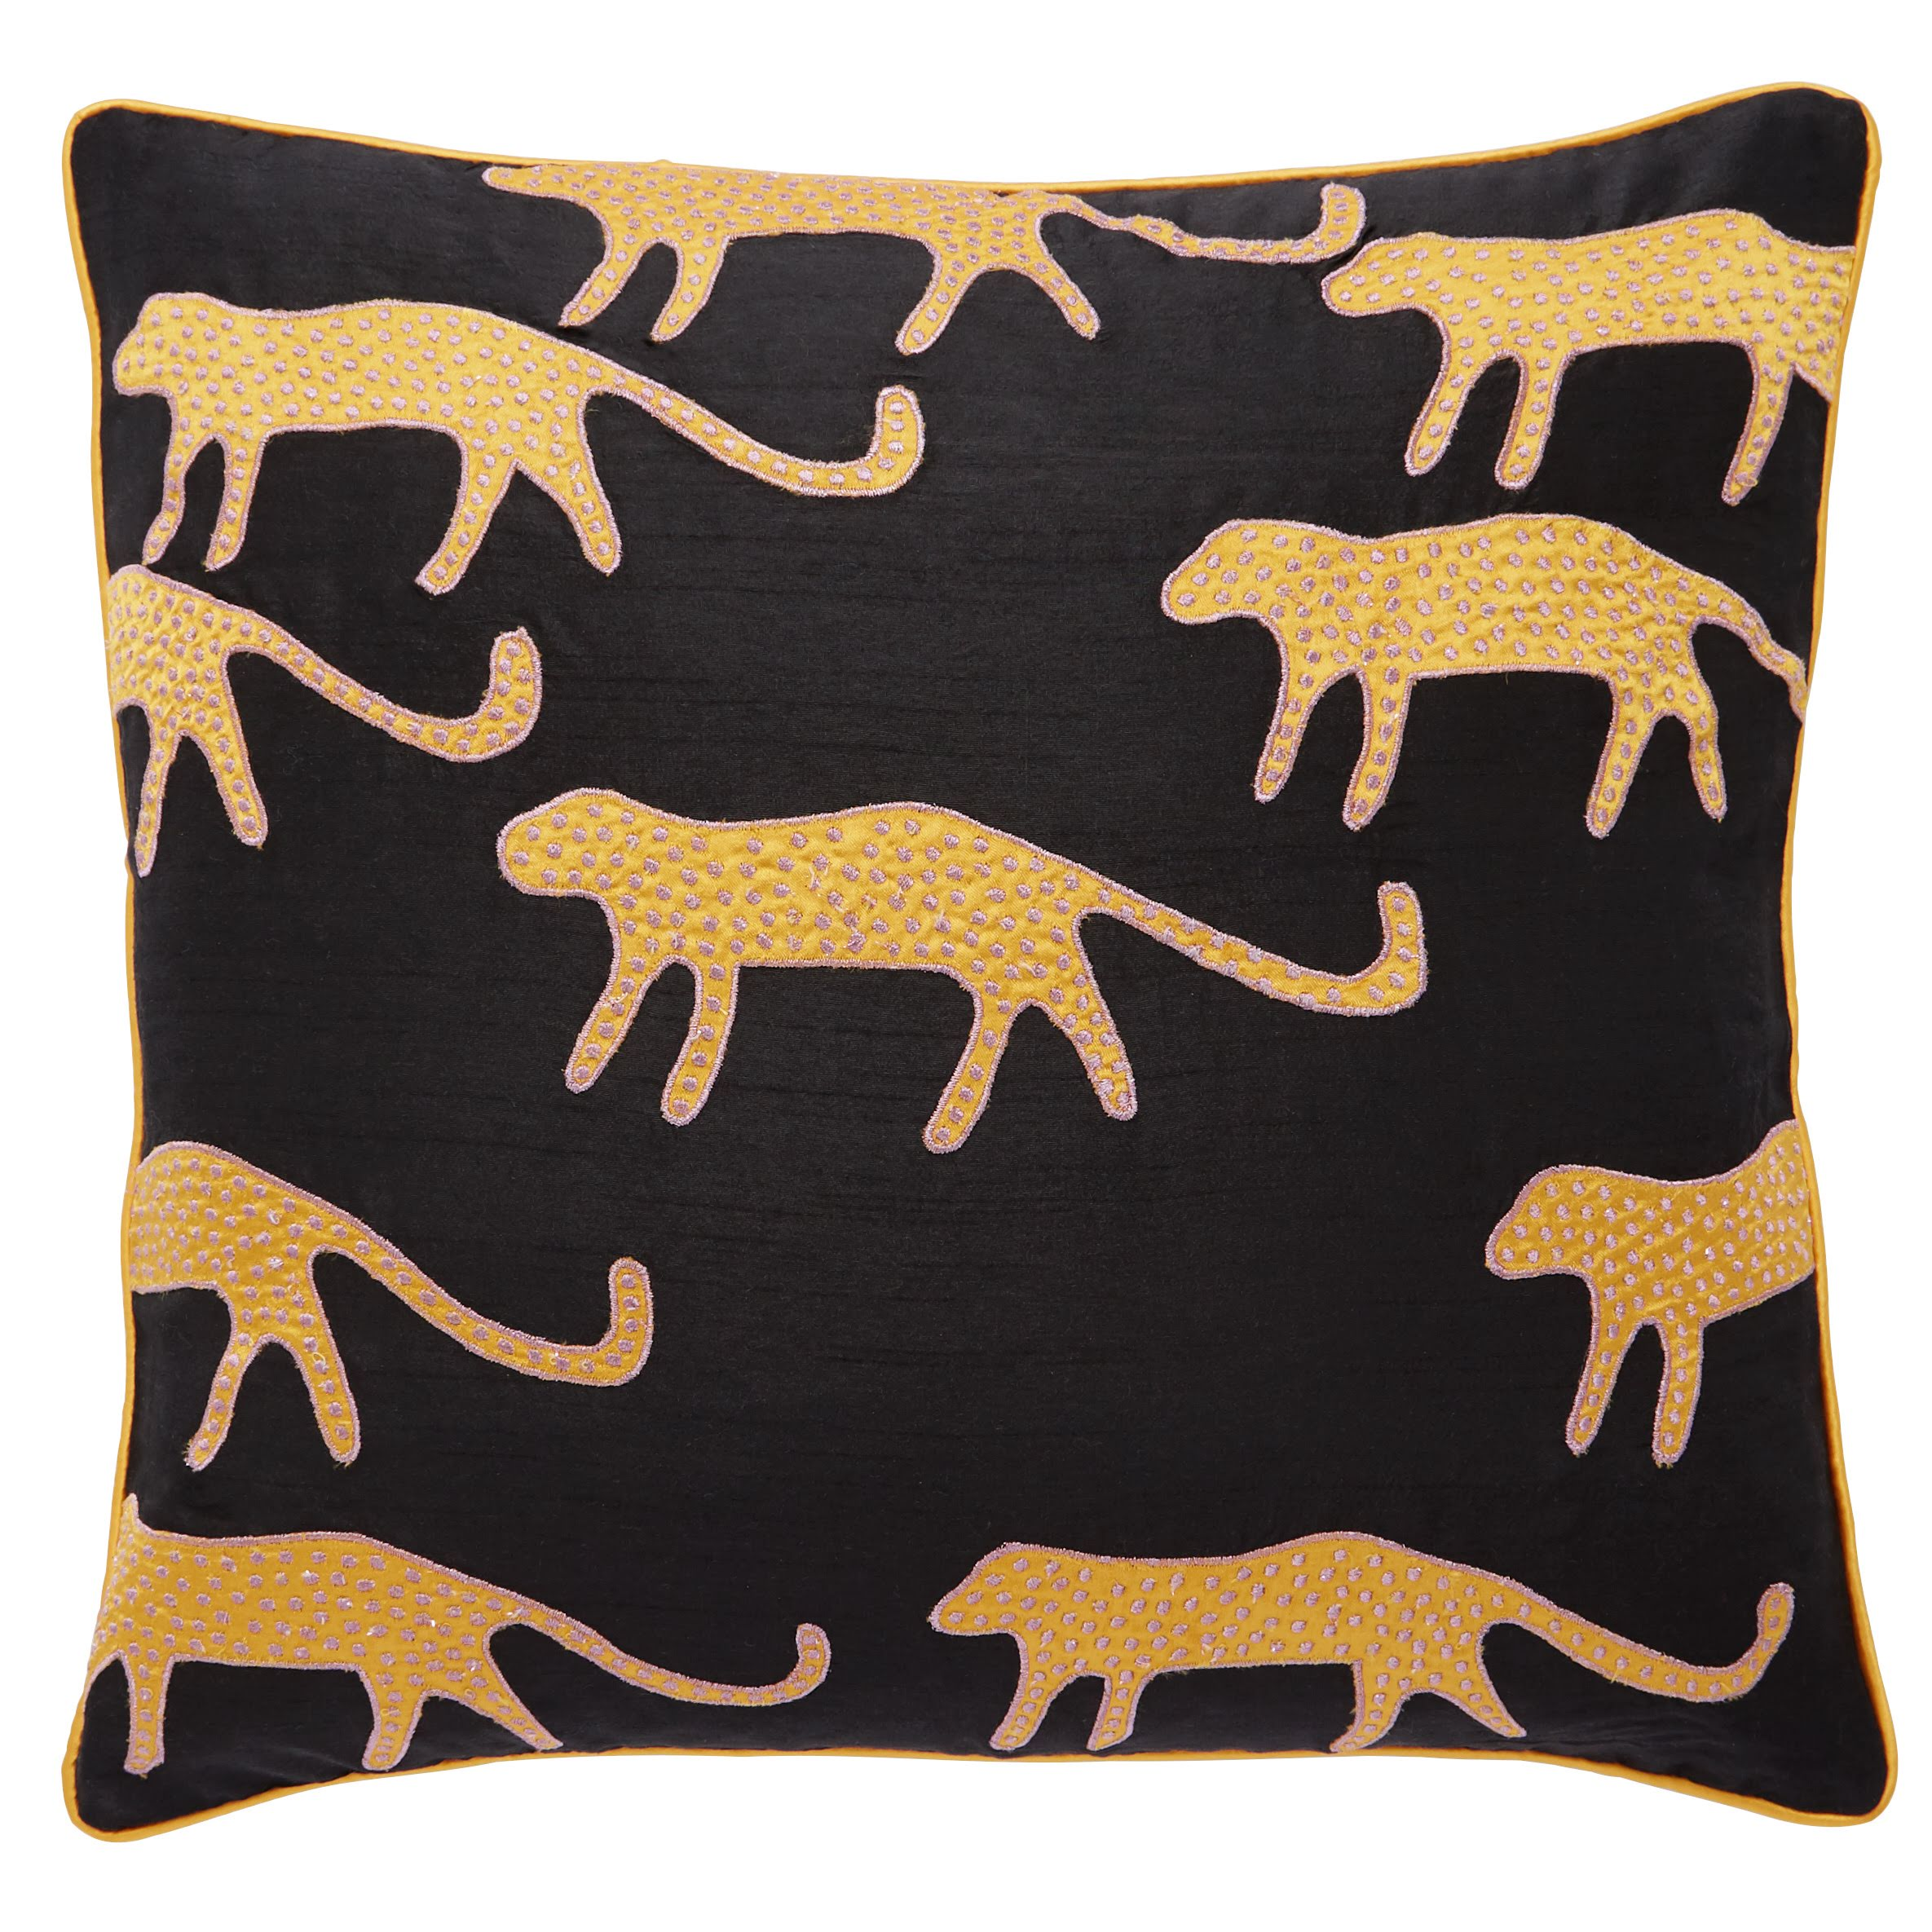 leopard-black-embroidered-cushion-45-x-45cm-779724